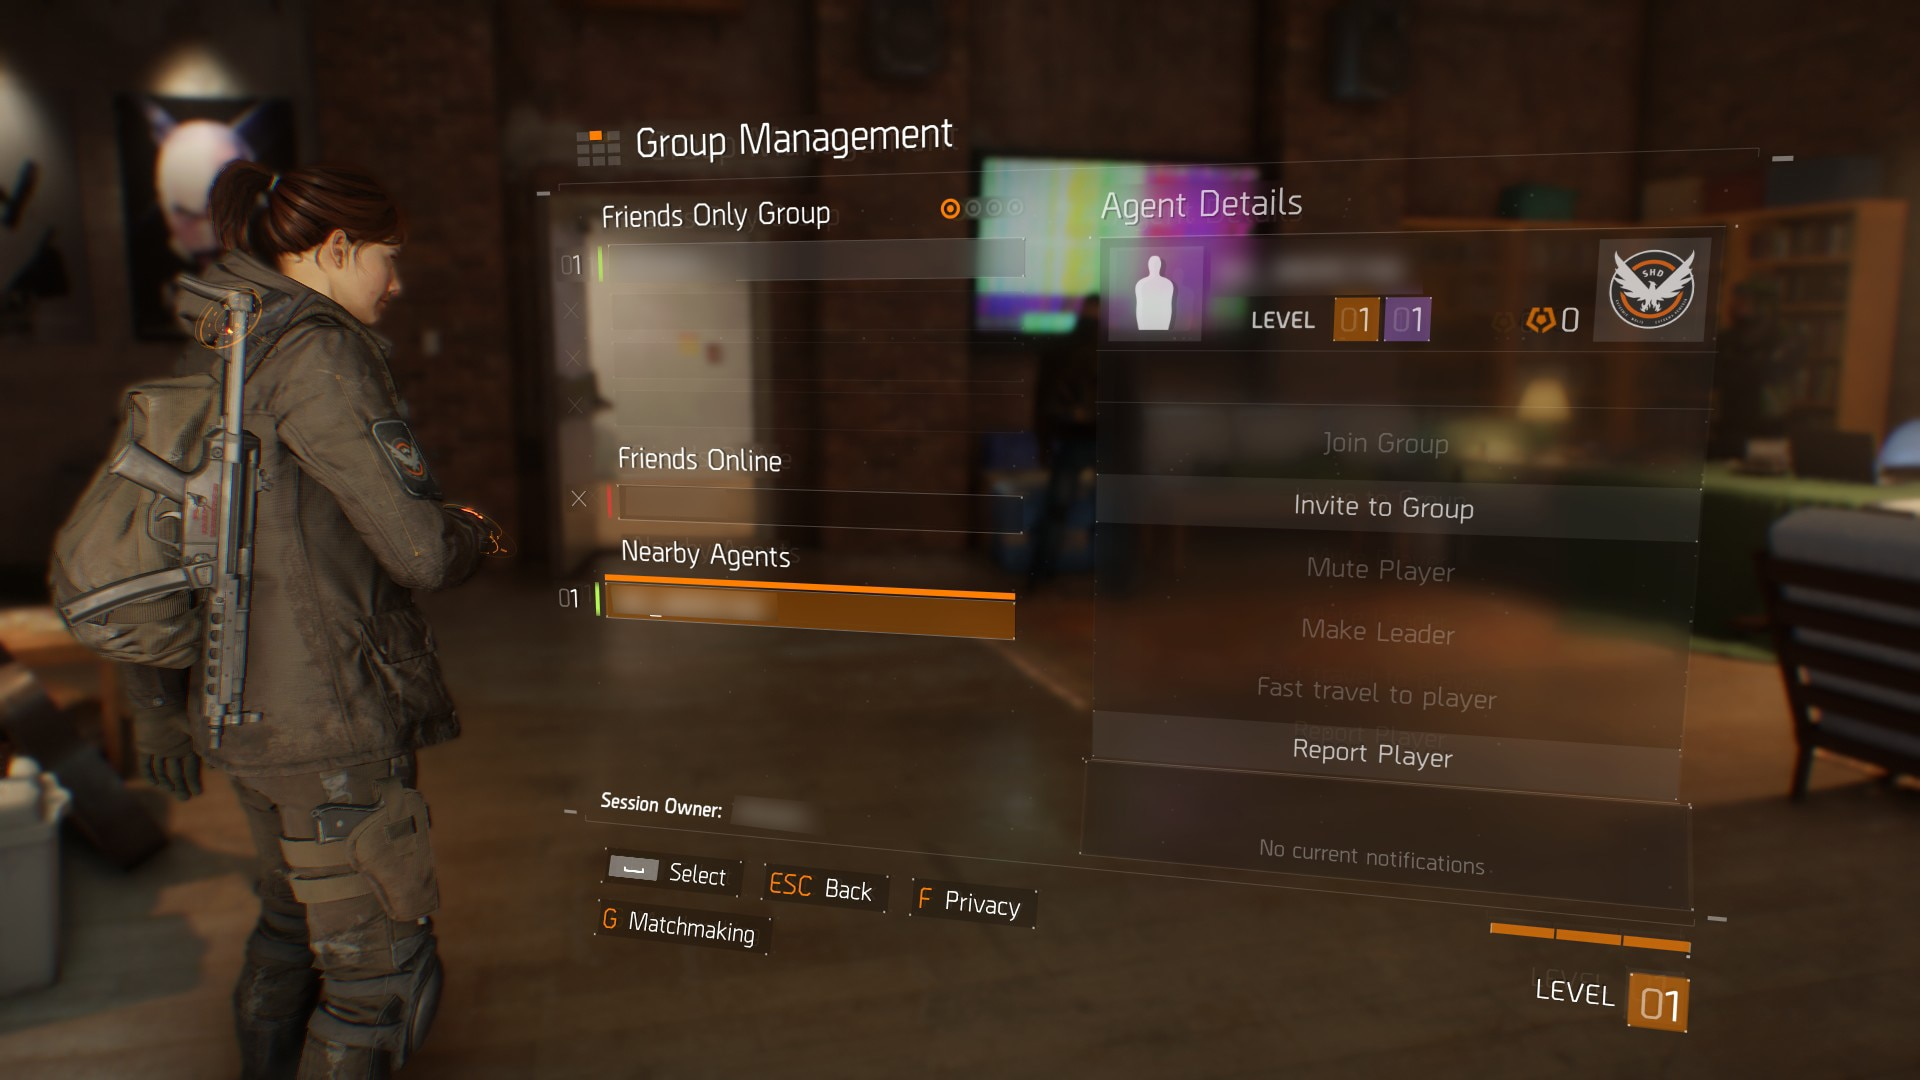 Player details in the Group Management menu